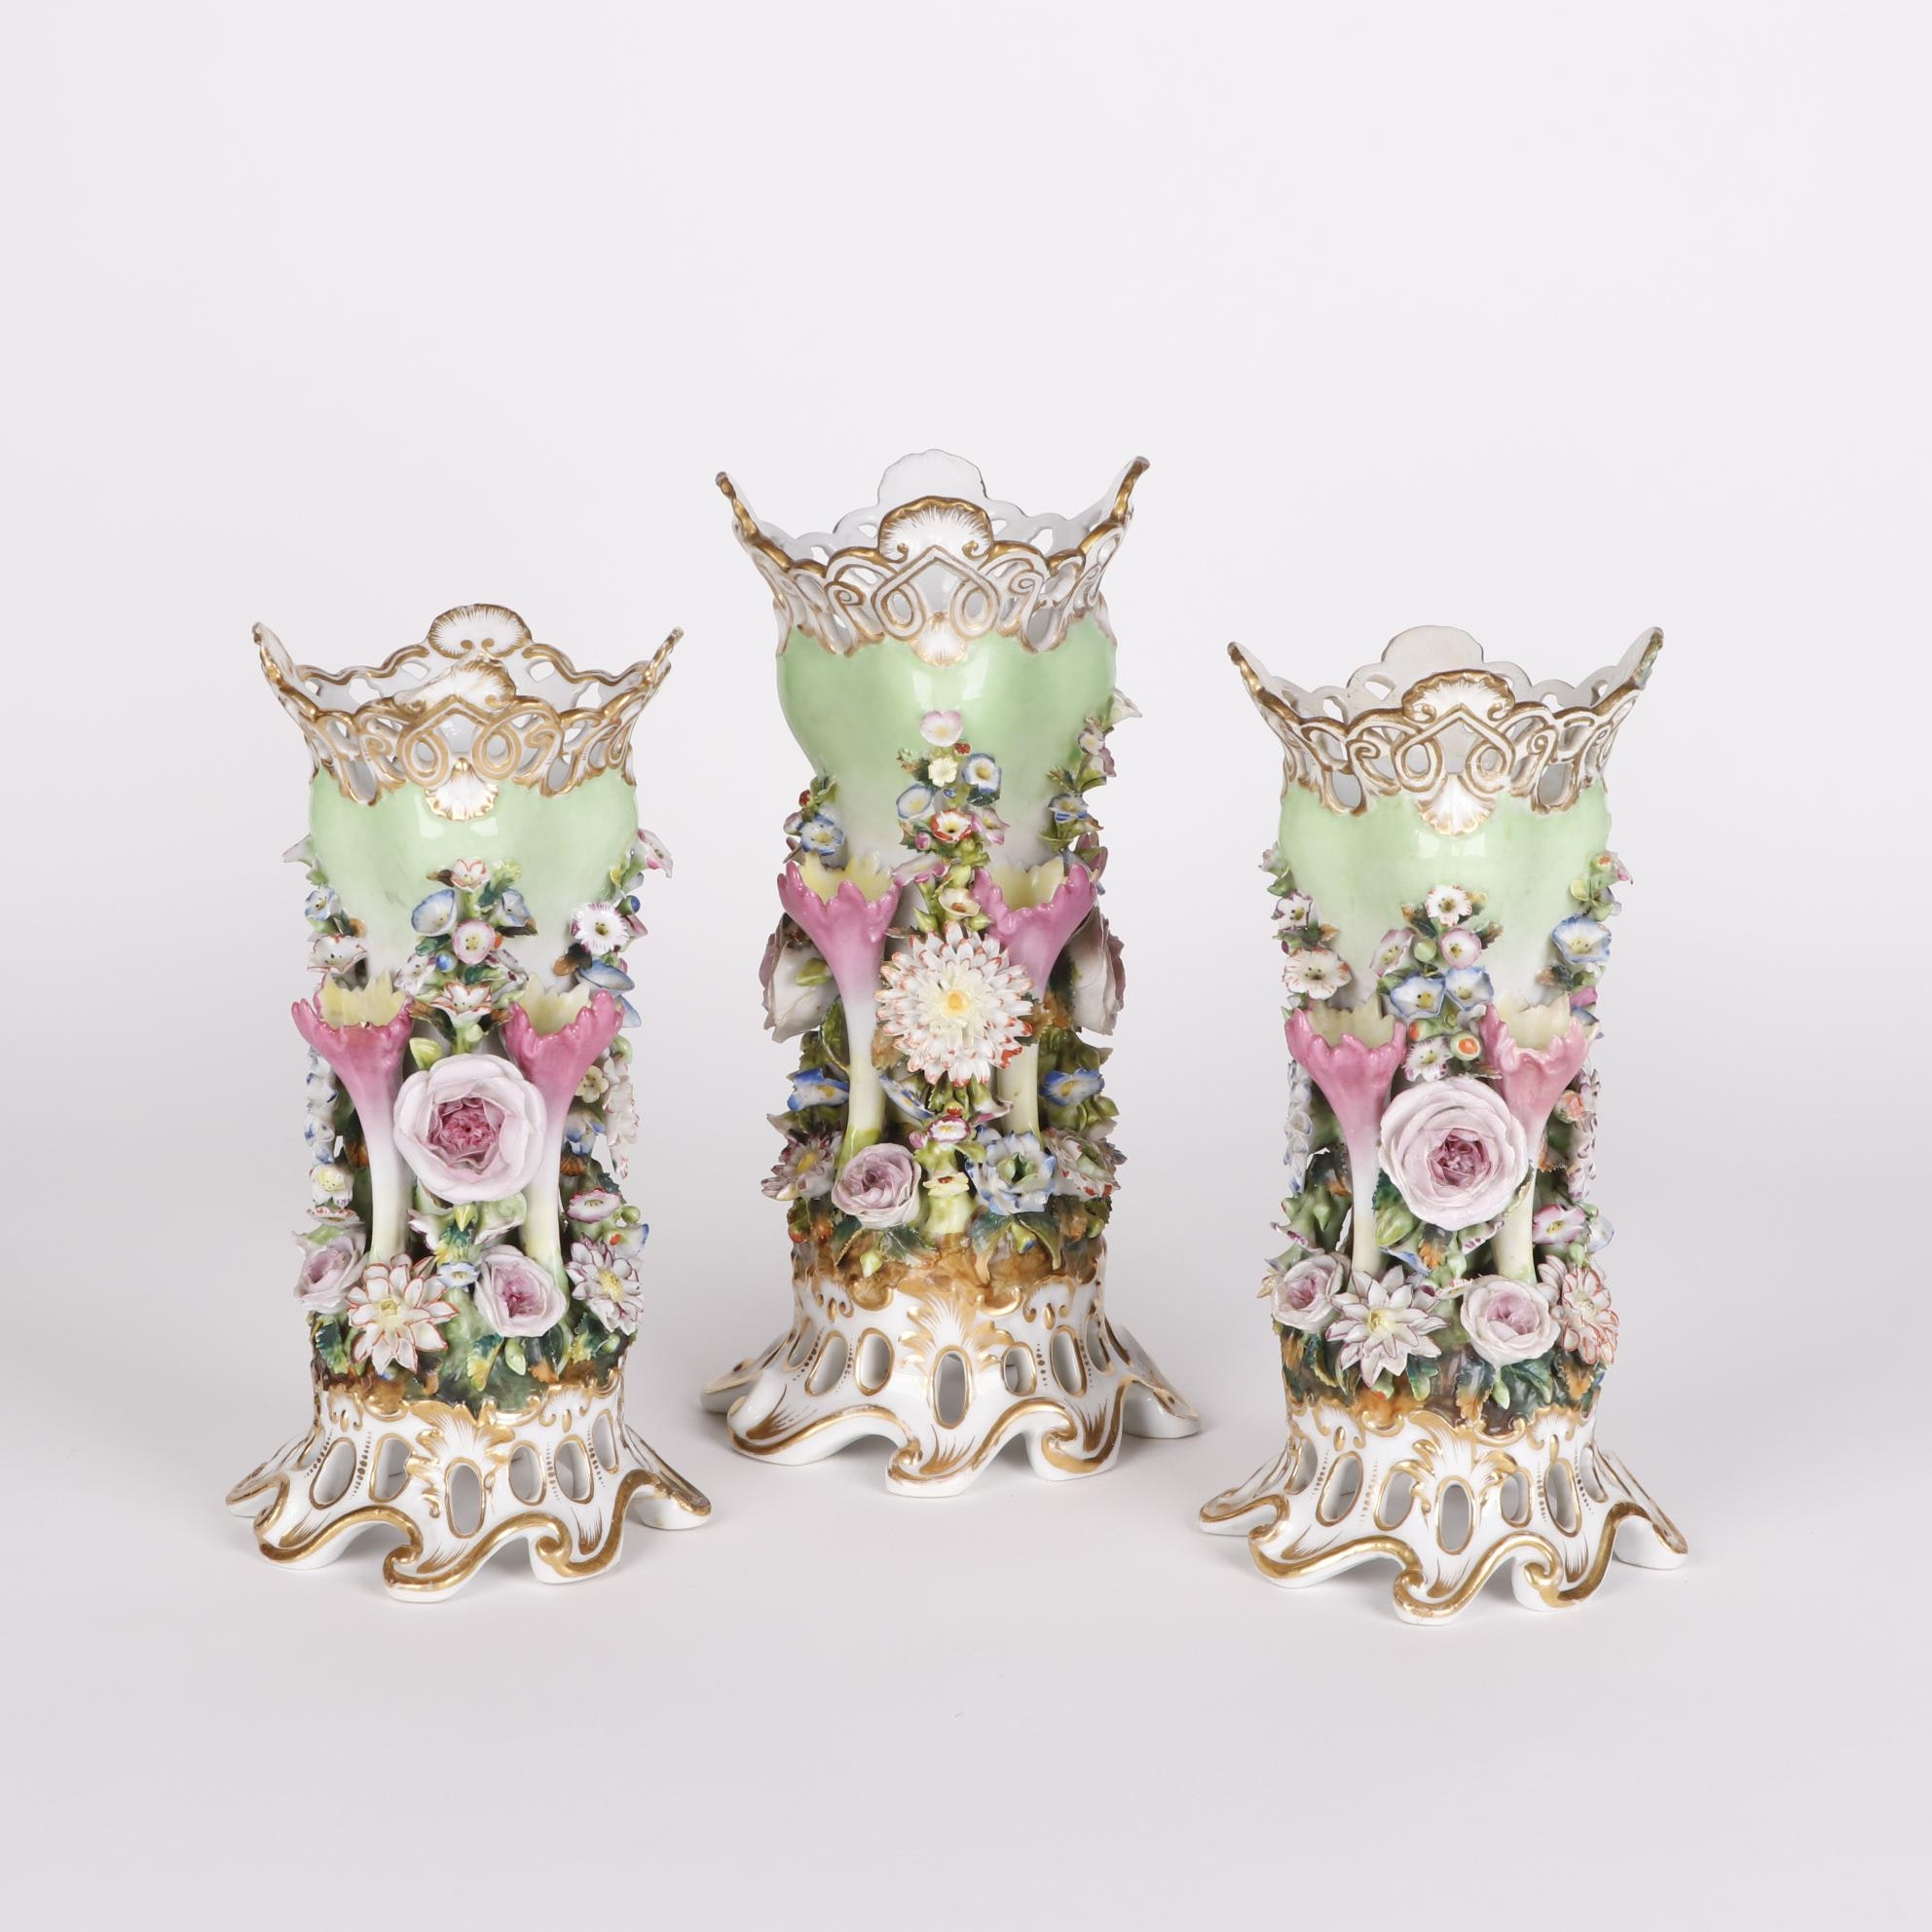 Jacob Petit Flower Encrusted Reticulated Porcelain Vases, 19th Century